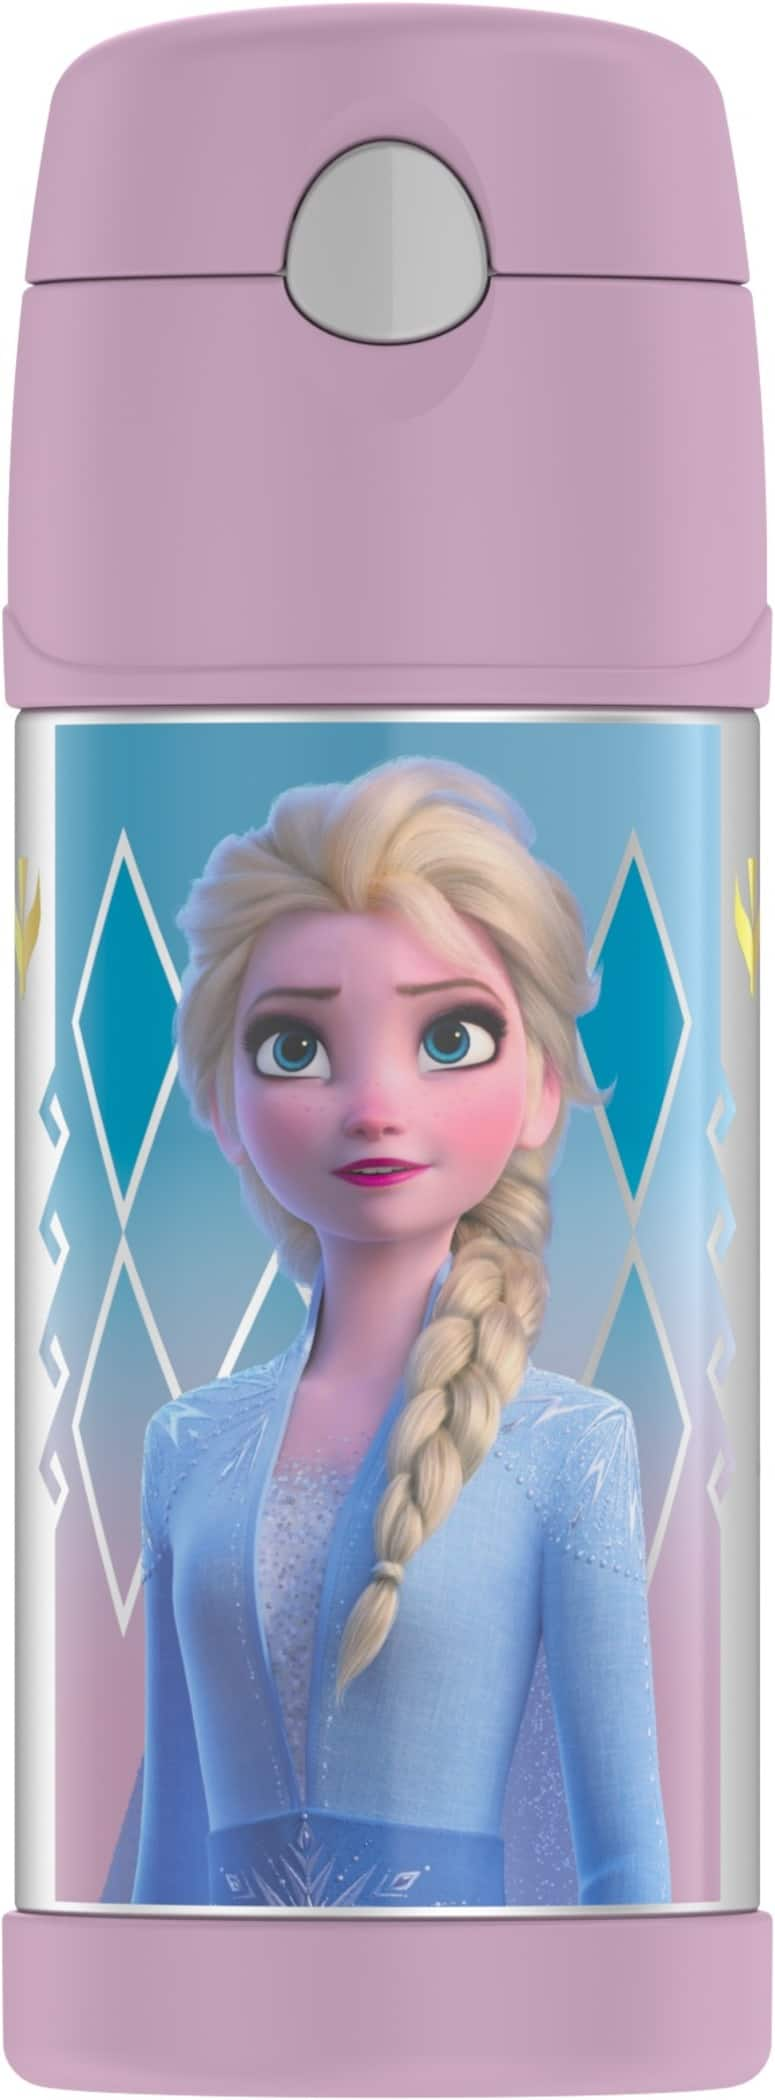 Thermos Disney Frozen 2 Funtainer 12oz bottle $1 at Walmart stores. YMMV